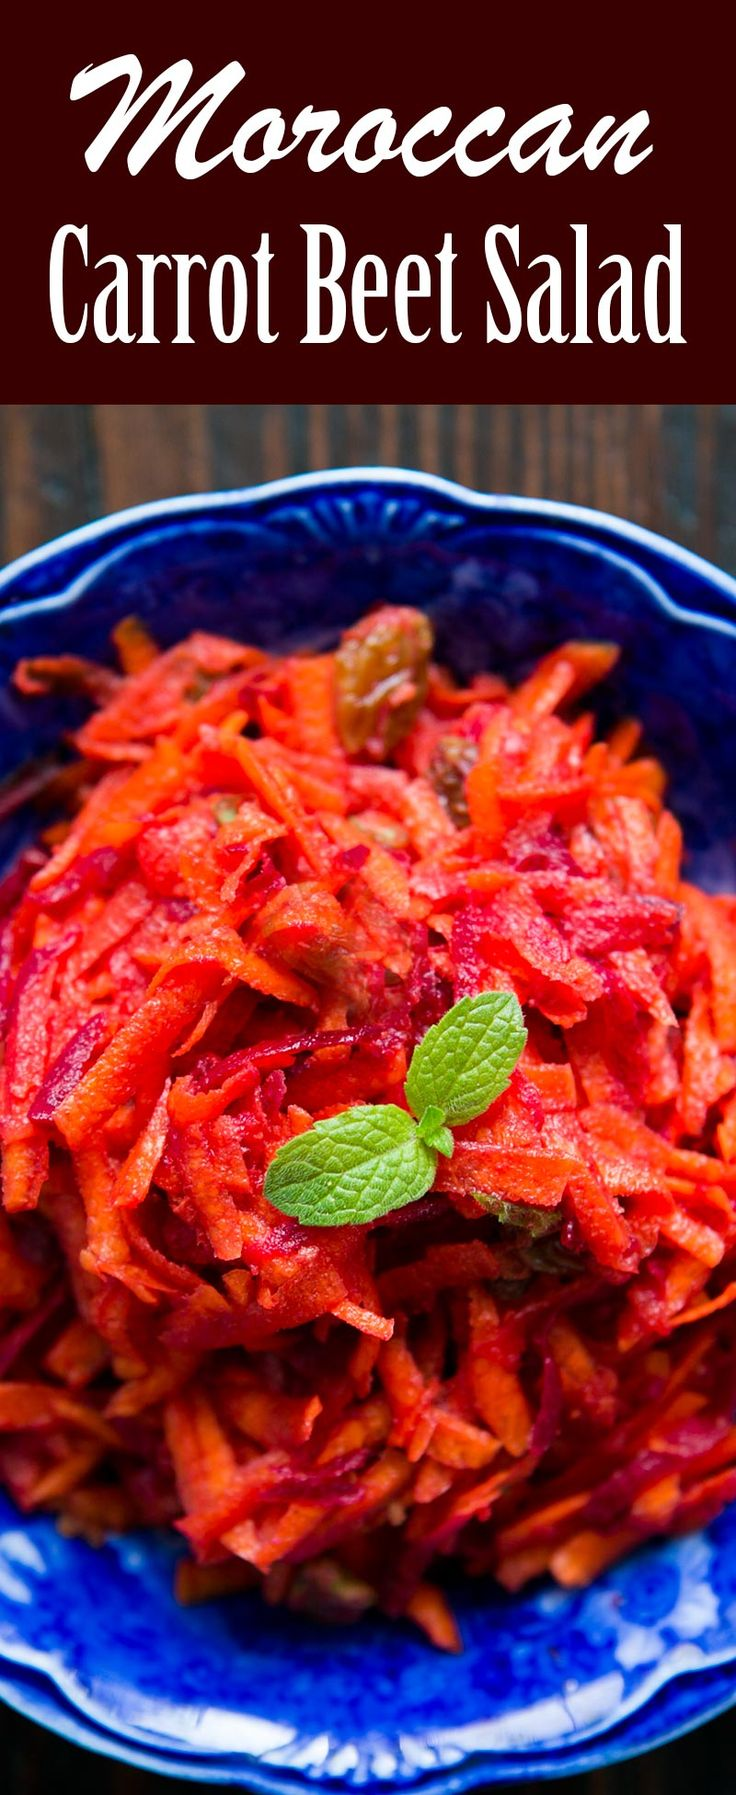 This Moroccan Carrot Beet Salad is the BEST! with shredded raw carrots and beets, raisins, and a cinnamon, cumin, dressing.